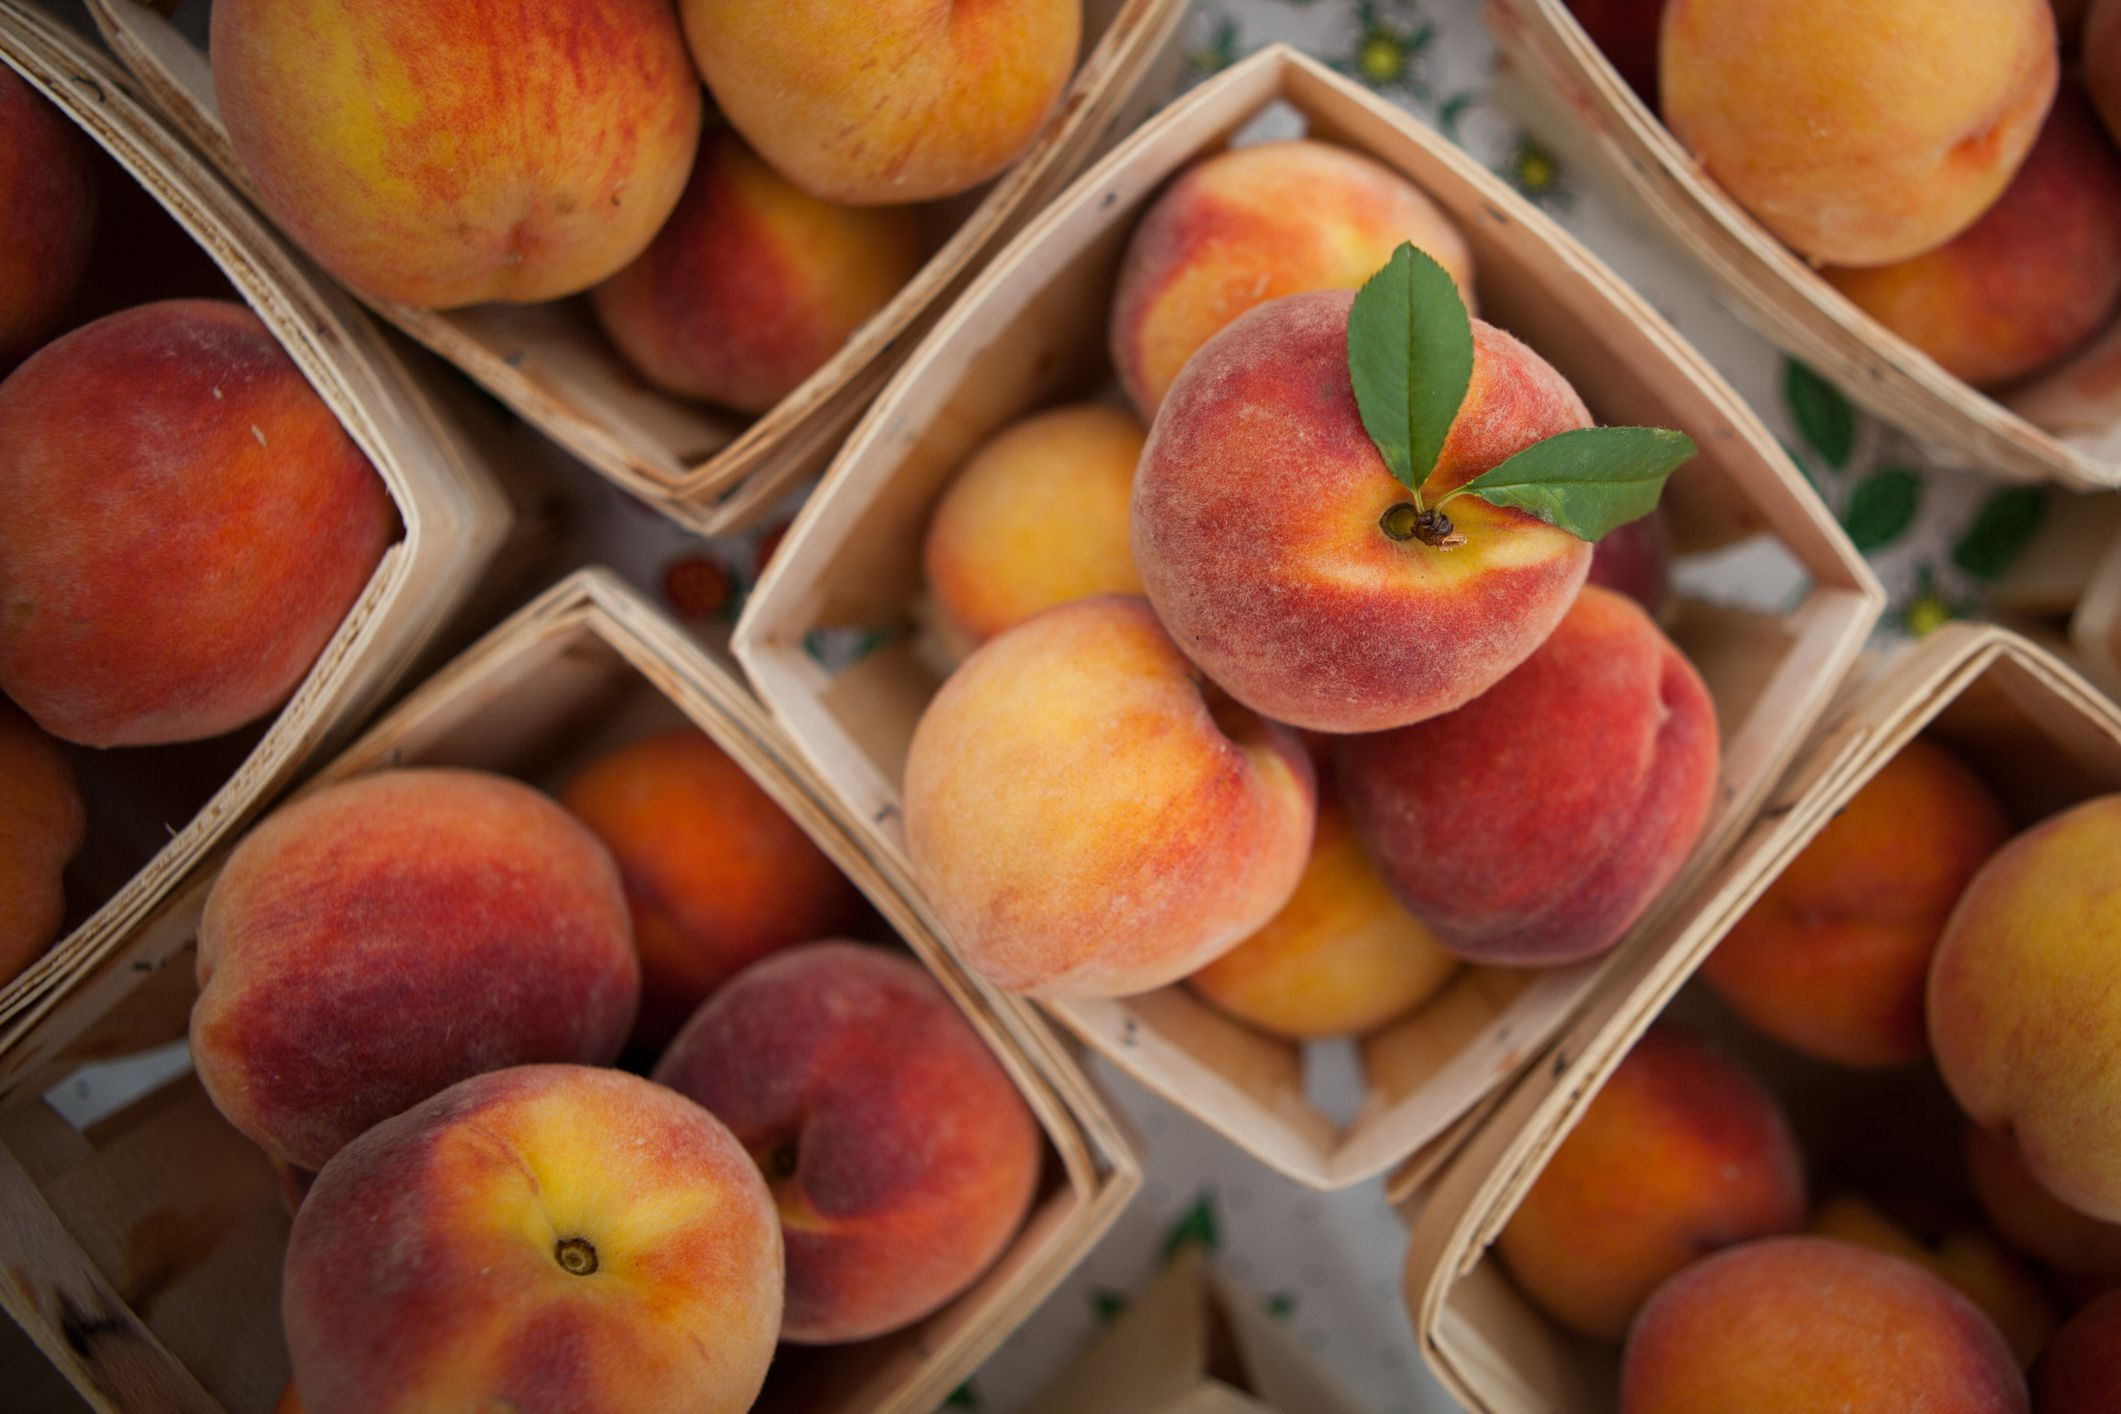 How To Pick A Perfectly Ripe Peach